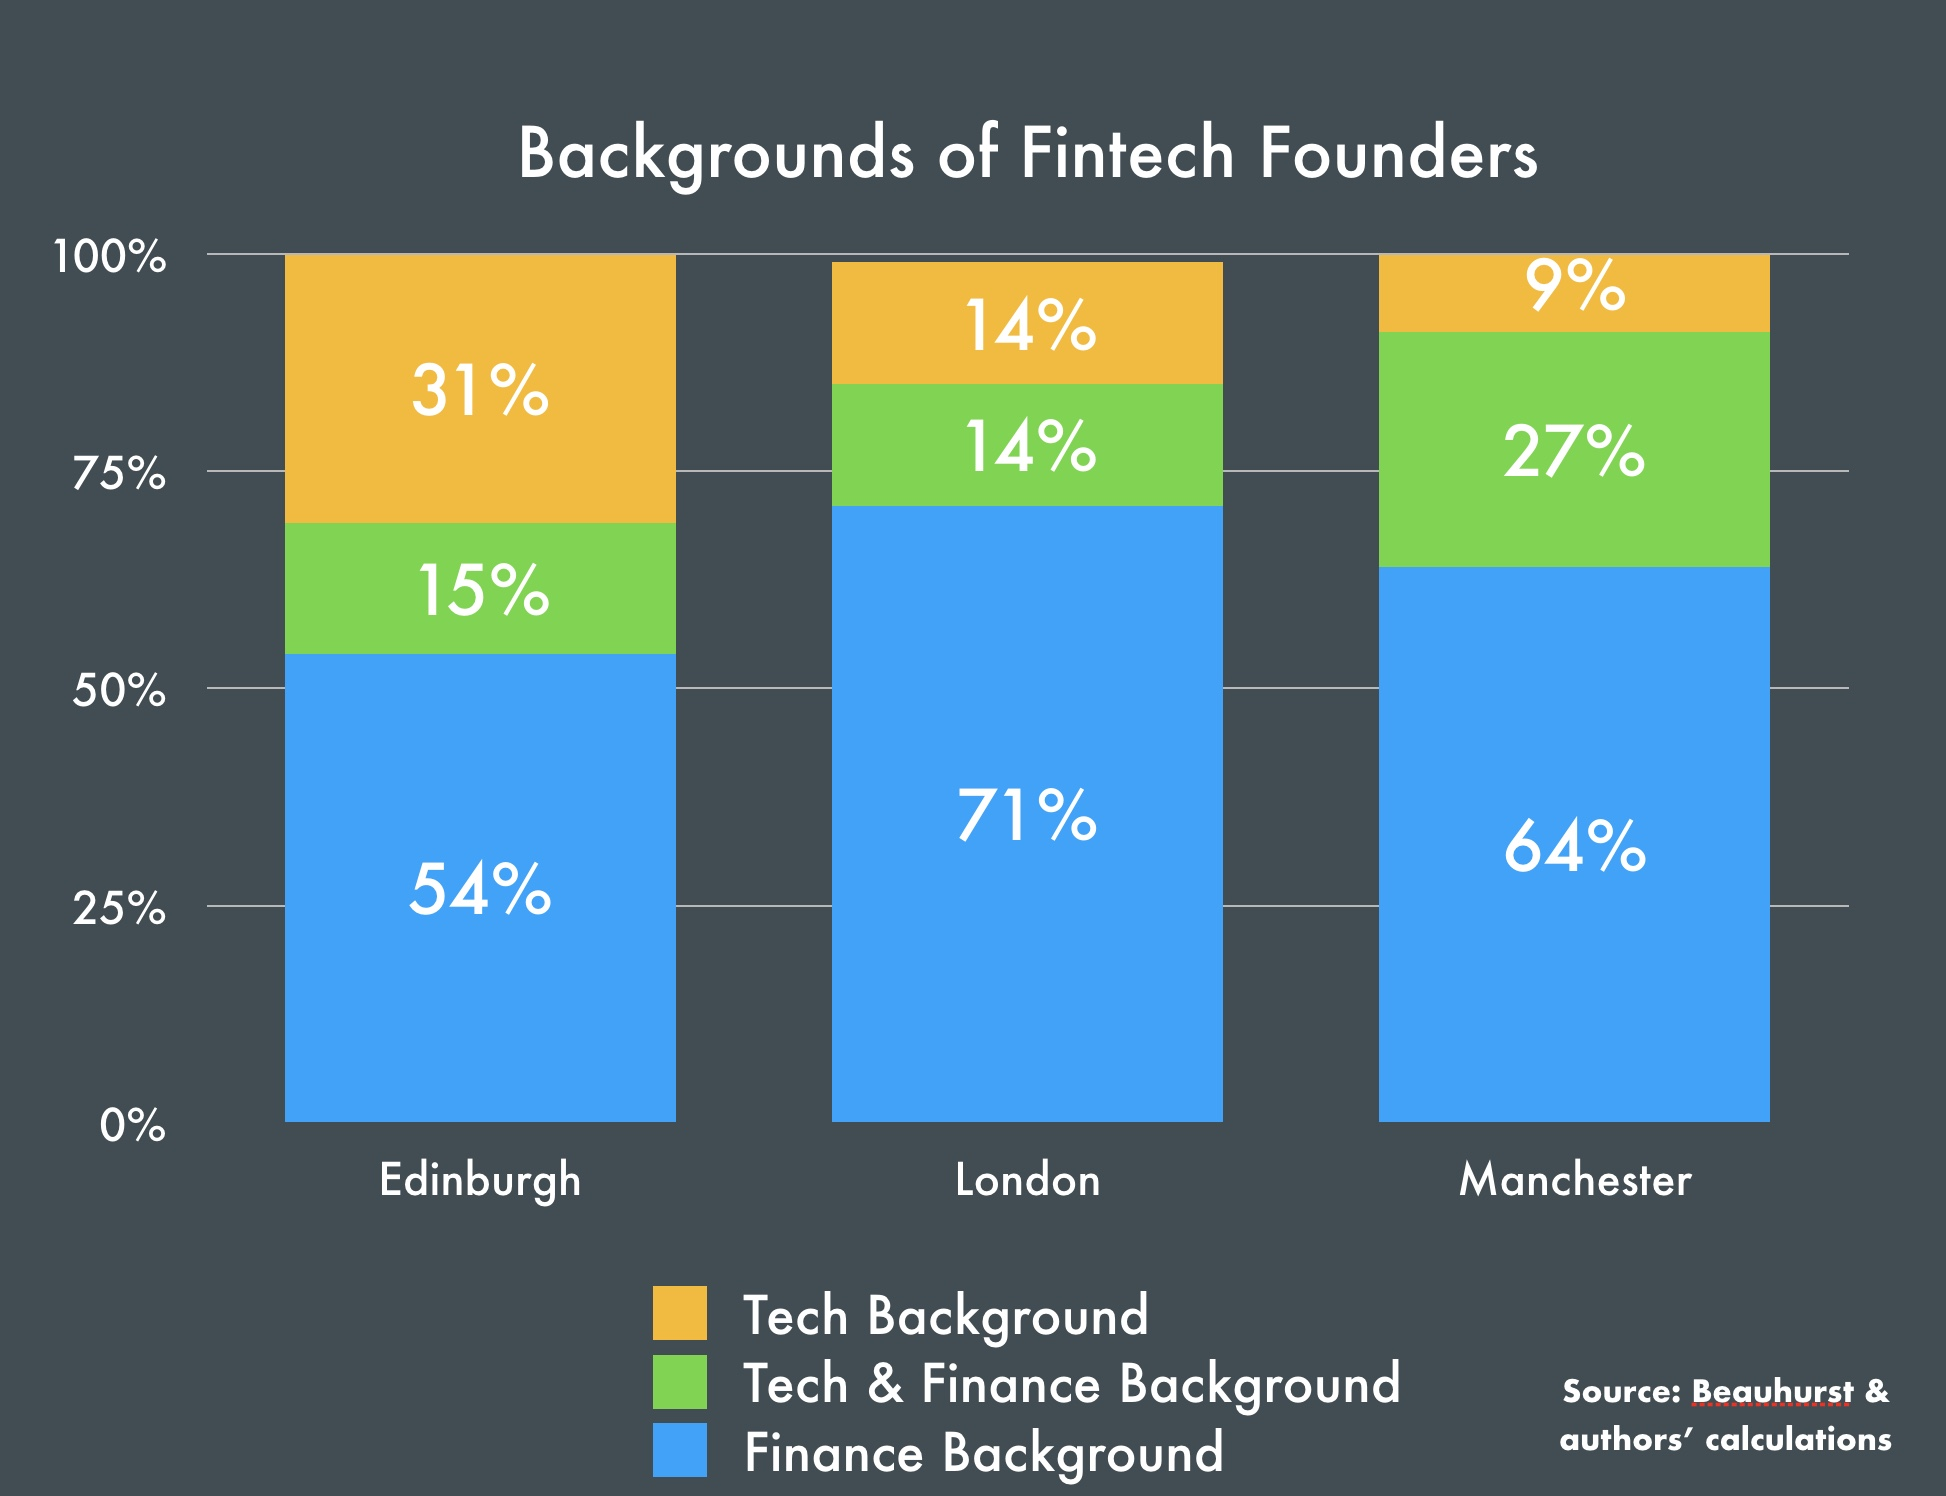 Edinburgh has fewer FinTech founders with a finance background